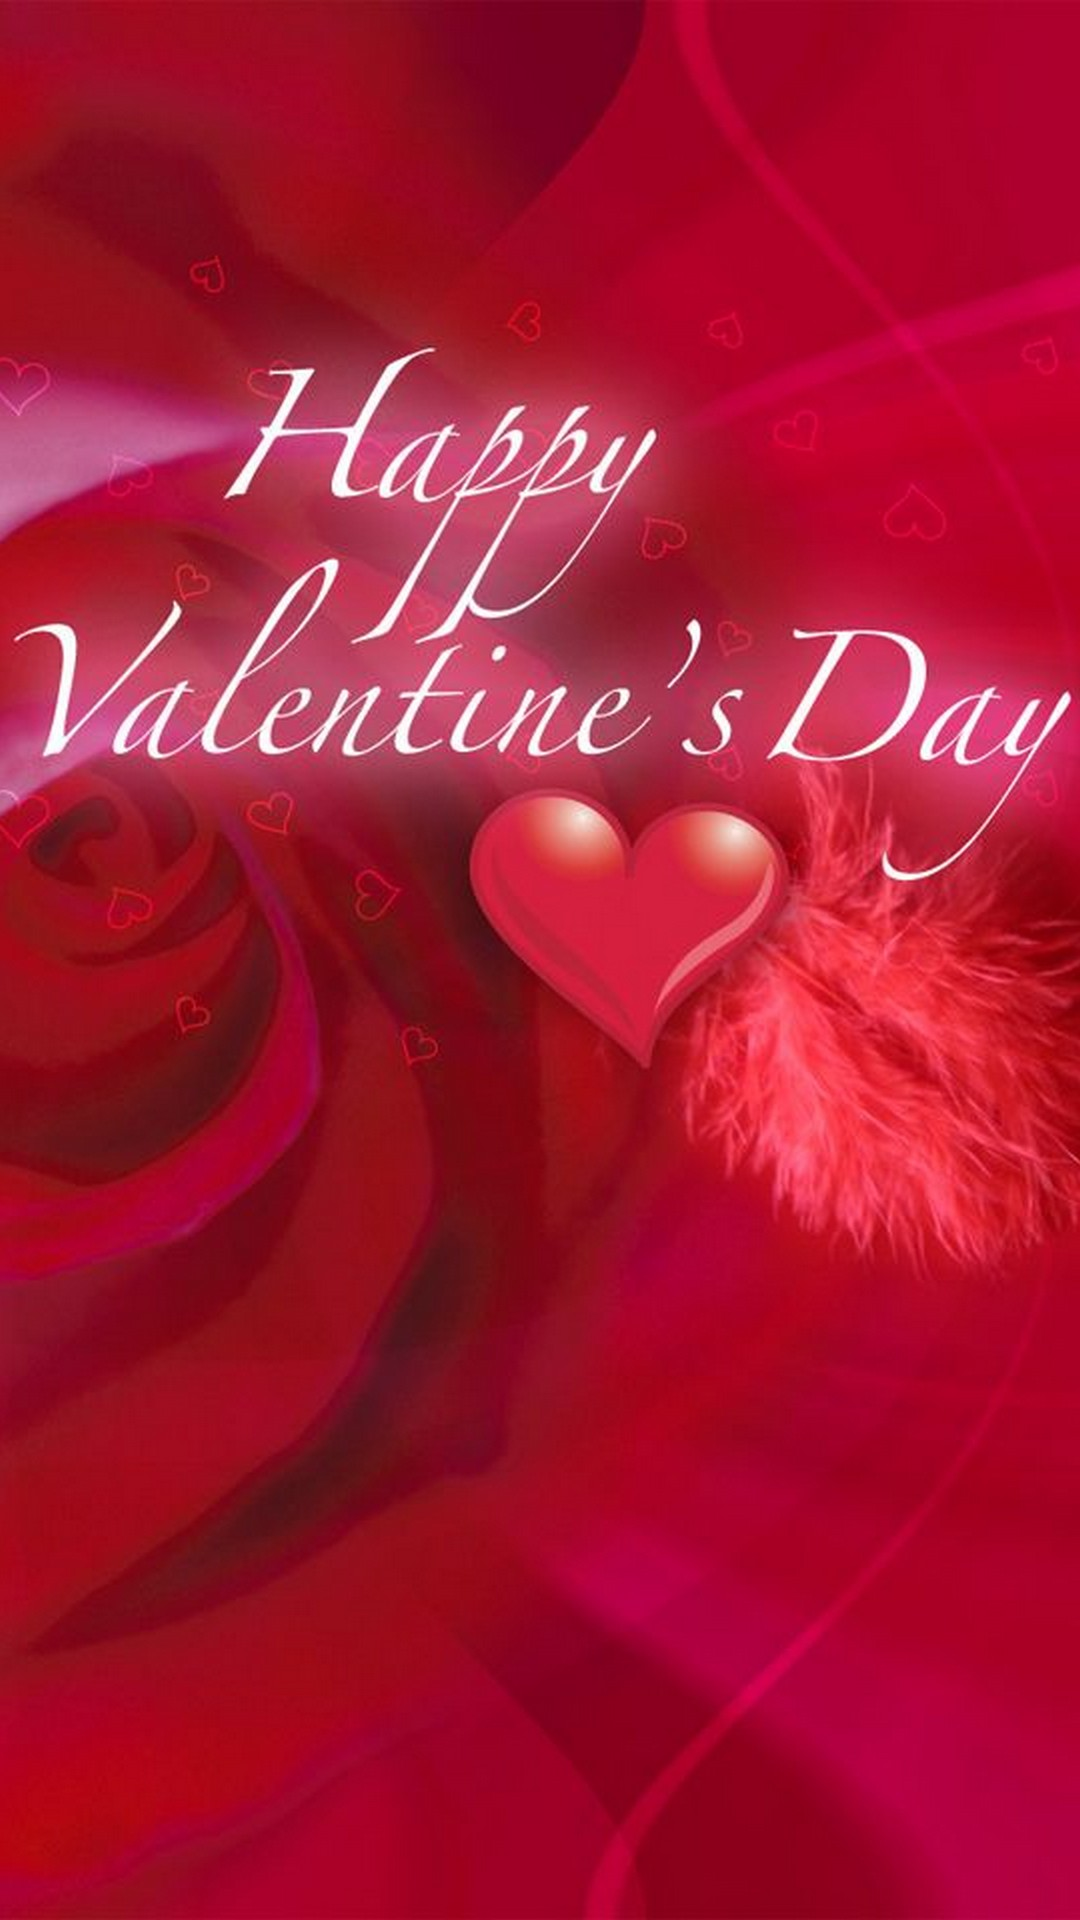 Happy Valentines Day Images   2021 Android Wallpapers 1080x1920